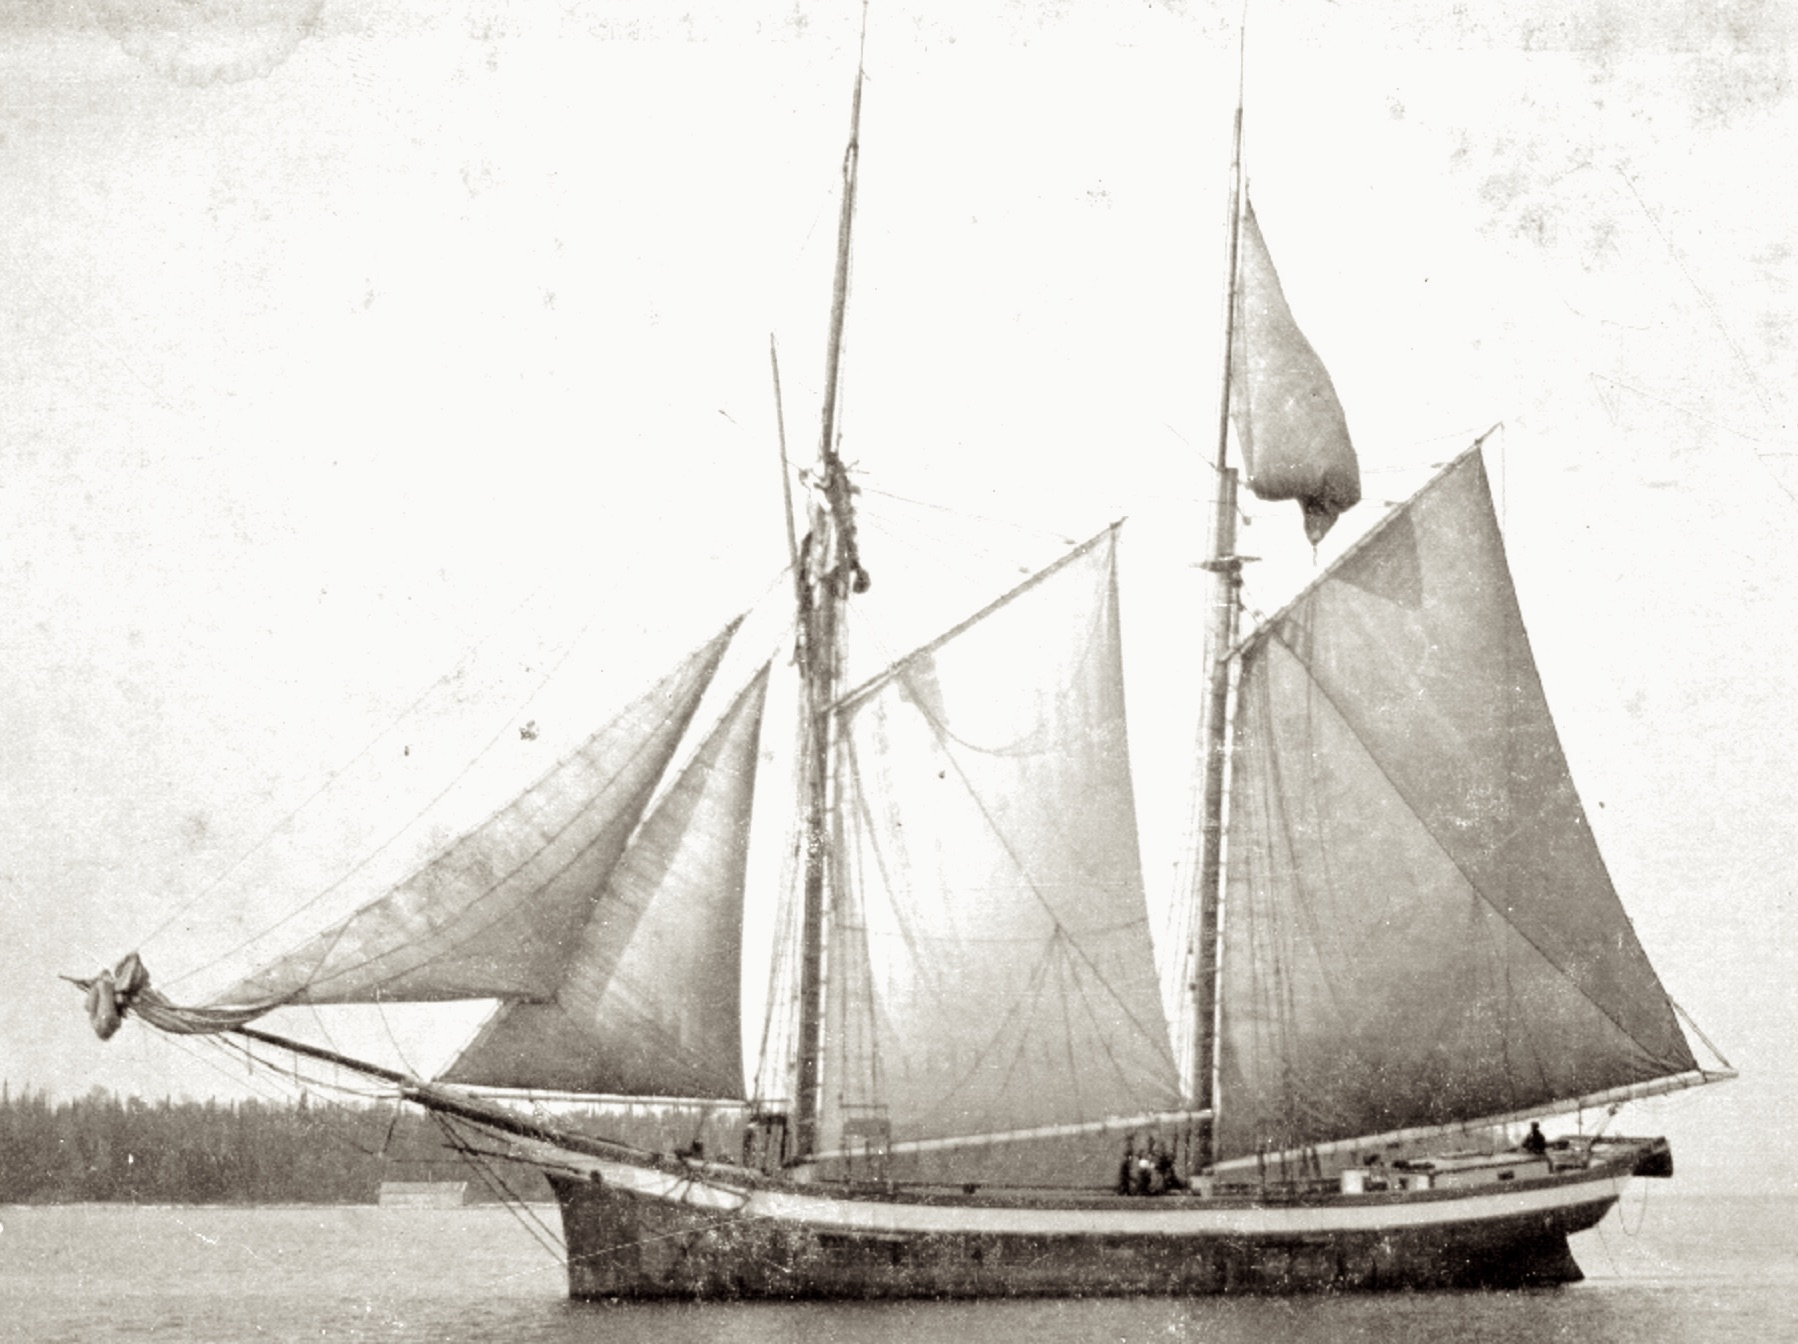 A 19th-century two-masted, gaff-rigged schooner on the Great Lakes.